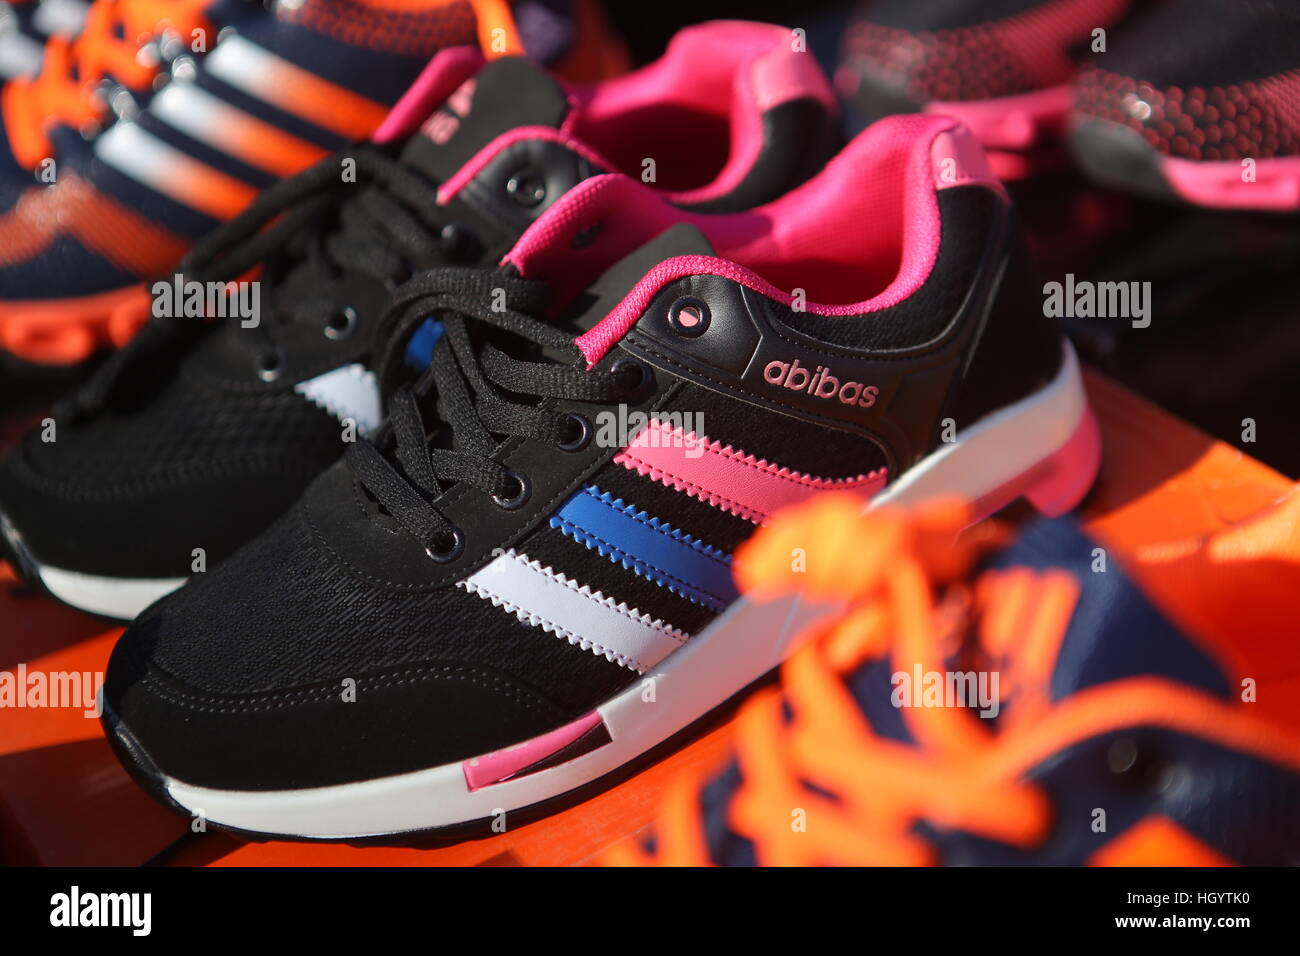 best service be259 b7b3e Stockfotos amp Fake Alamy Shoes China Bilder SqqpvFW